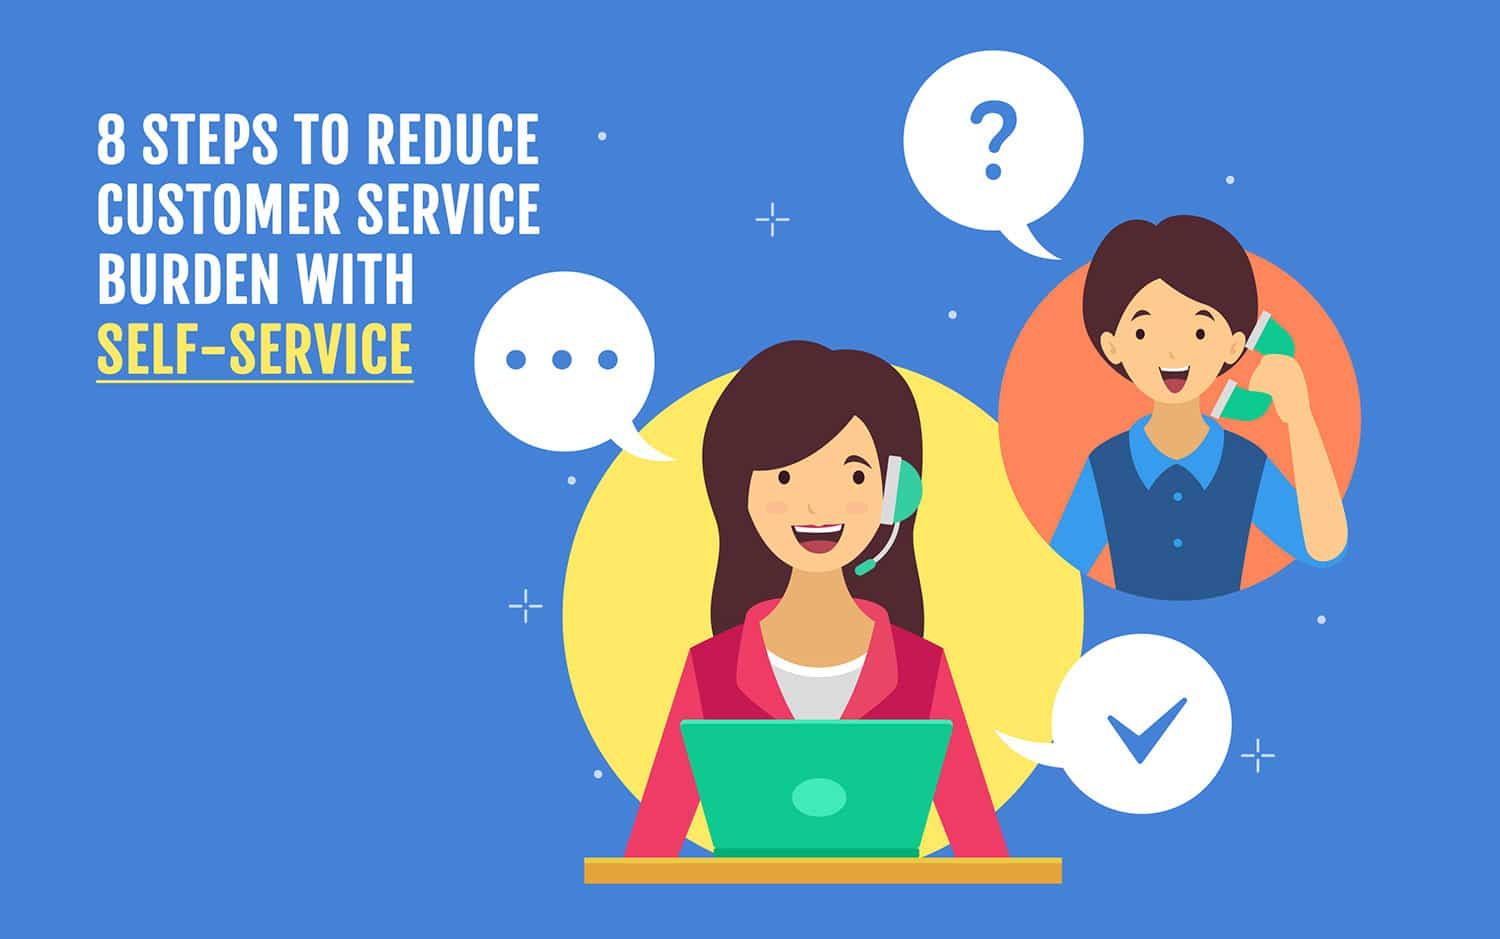 8 steps to reduce customer service burden with self-service